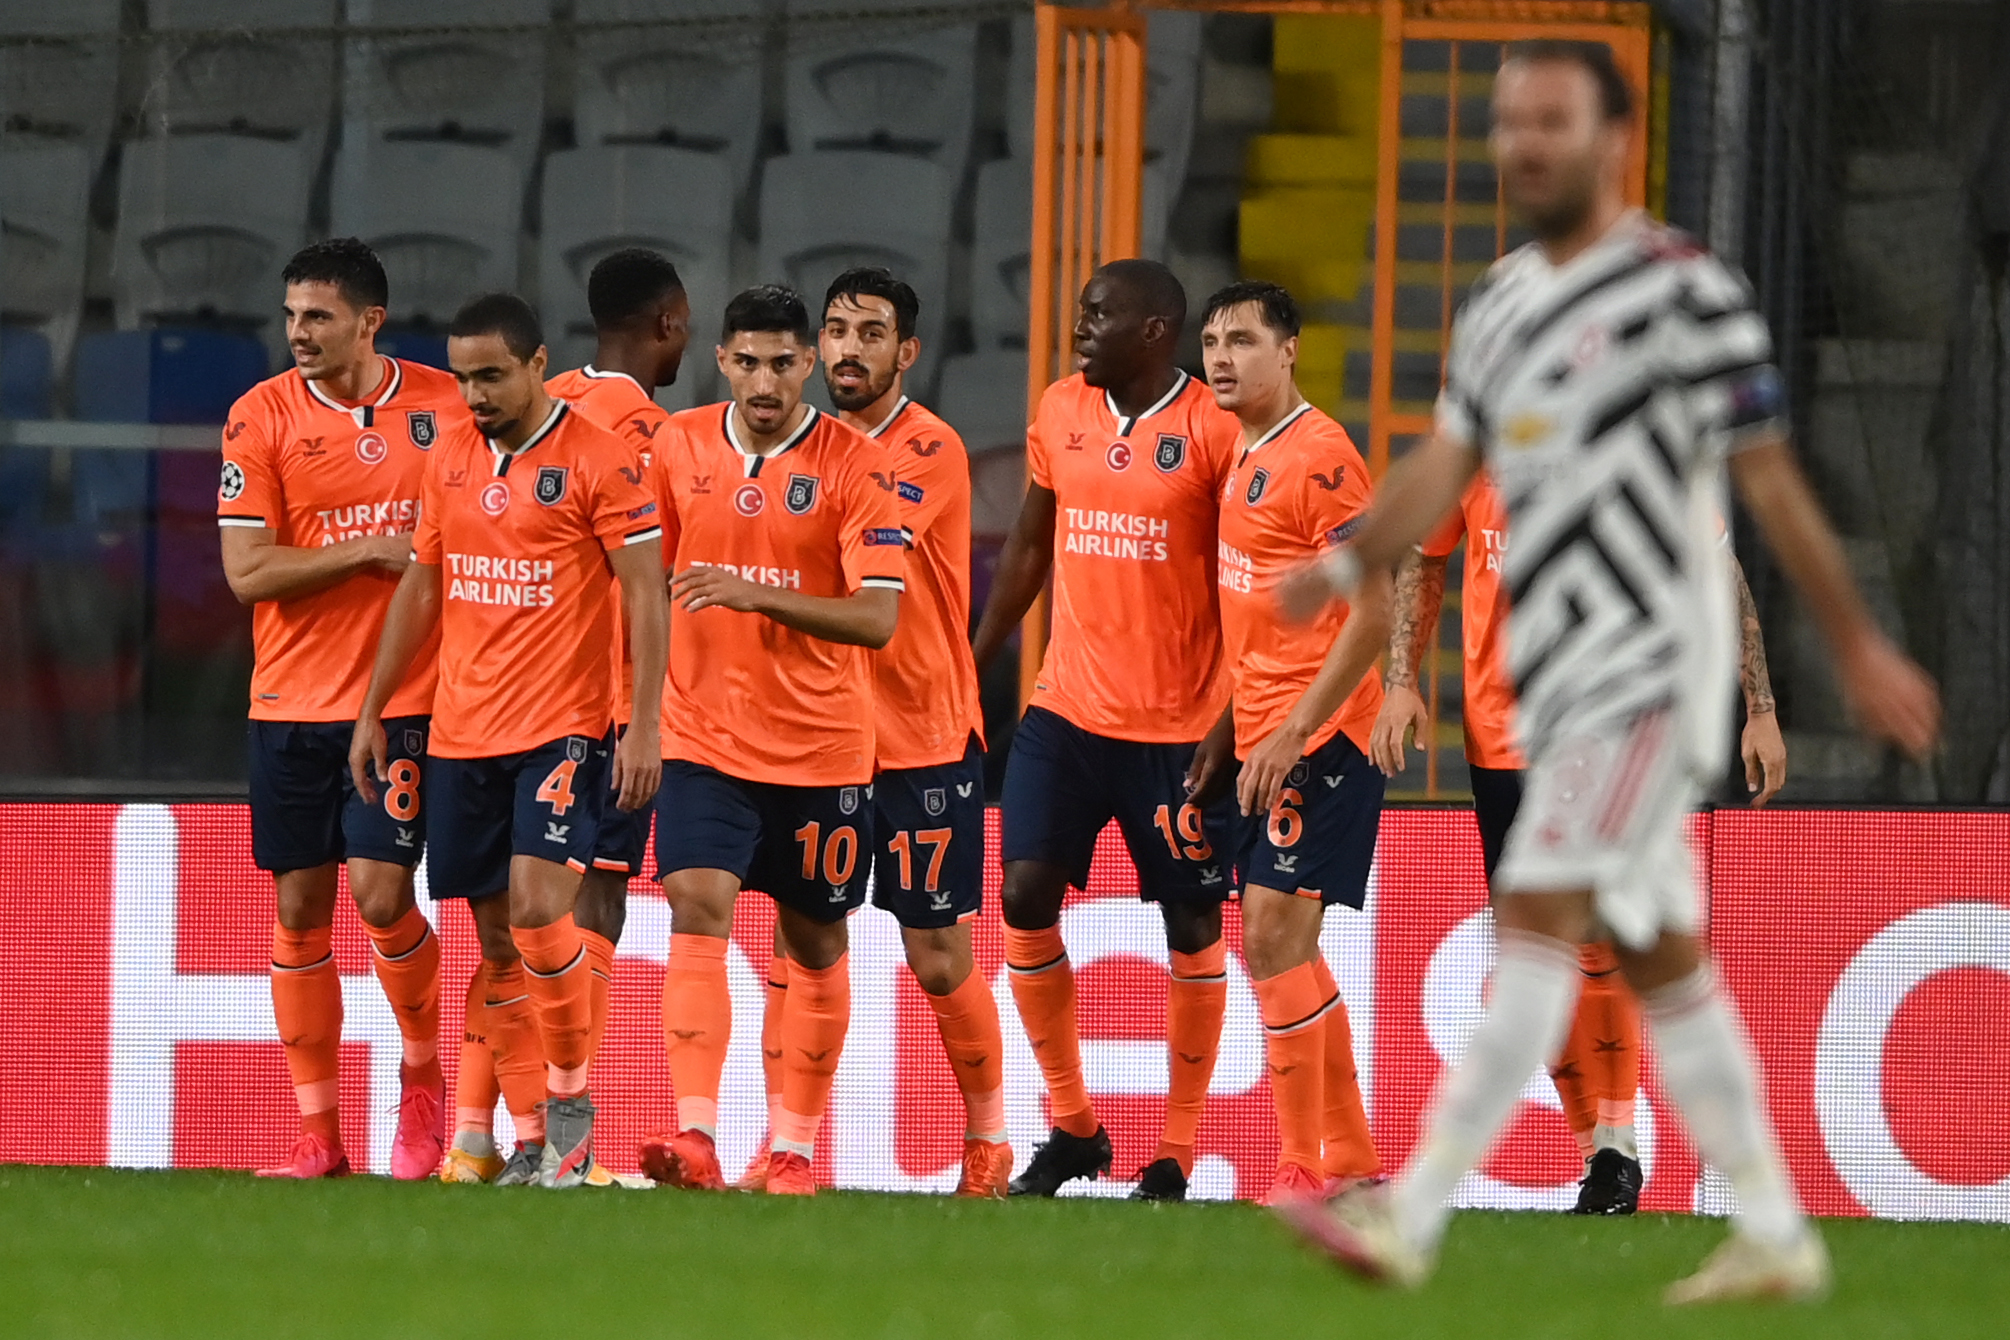 Champions League: Ighalo Benched In Man United's Away Defeat To Istanbul Basaksehir